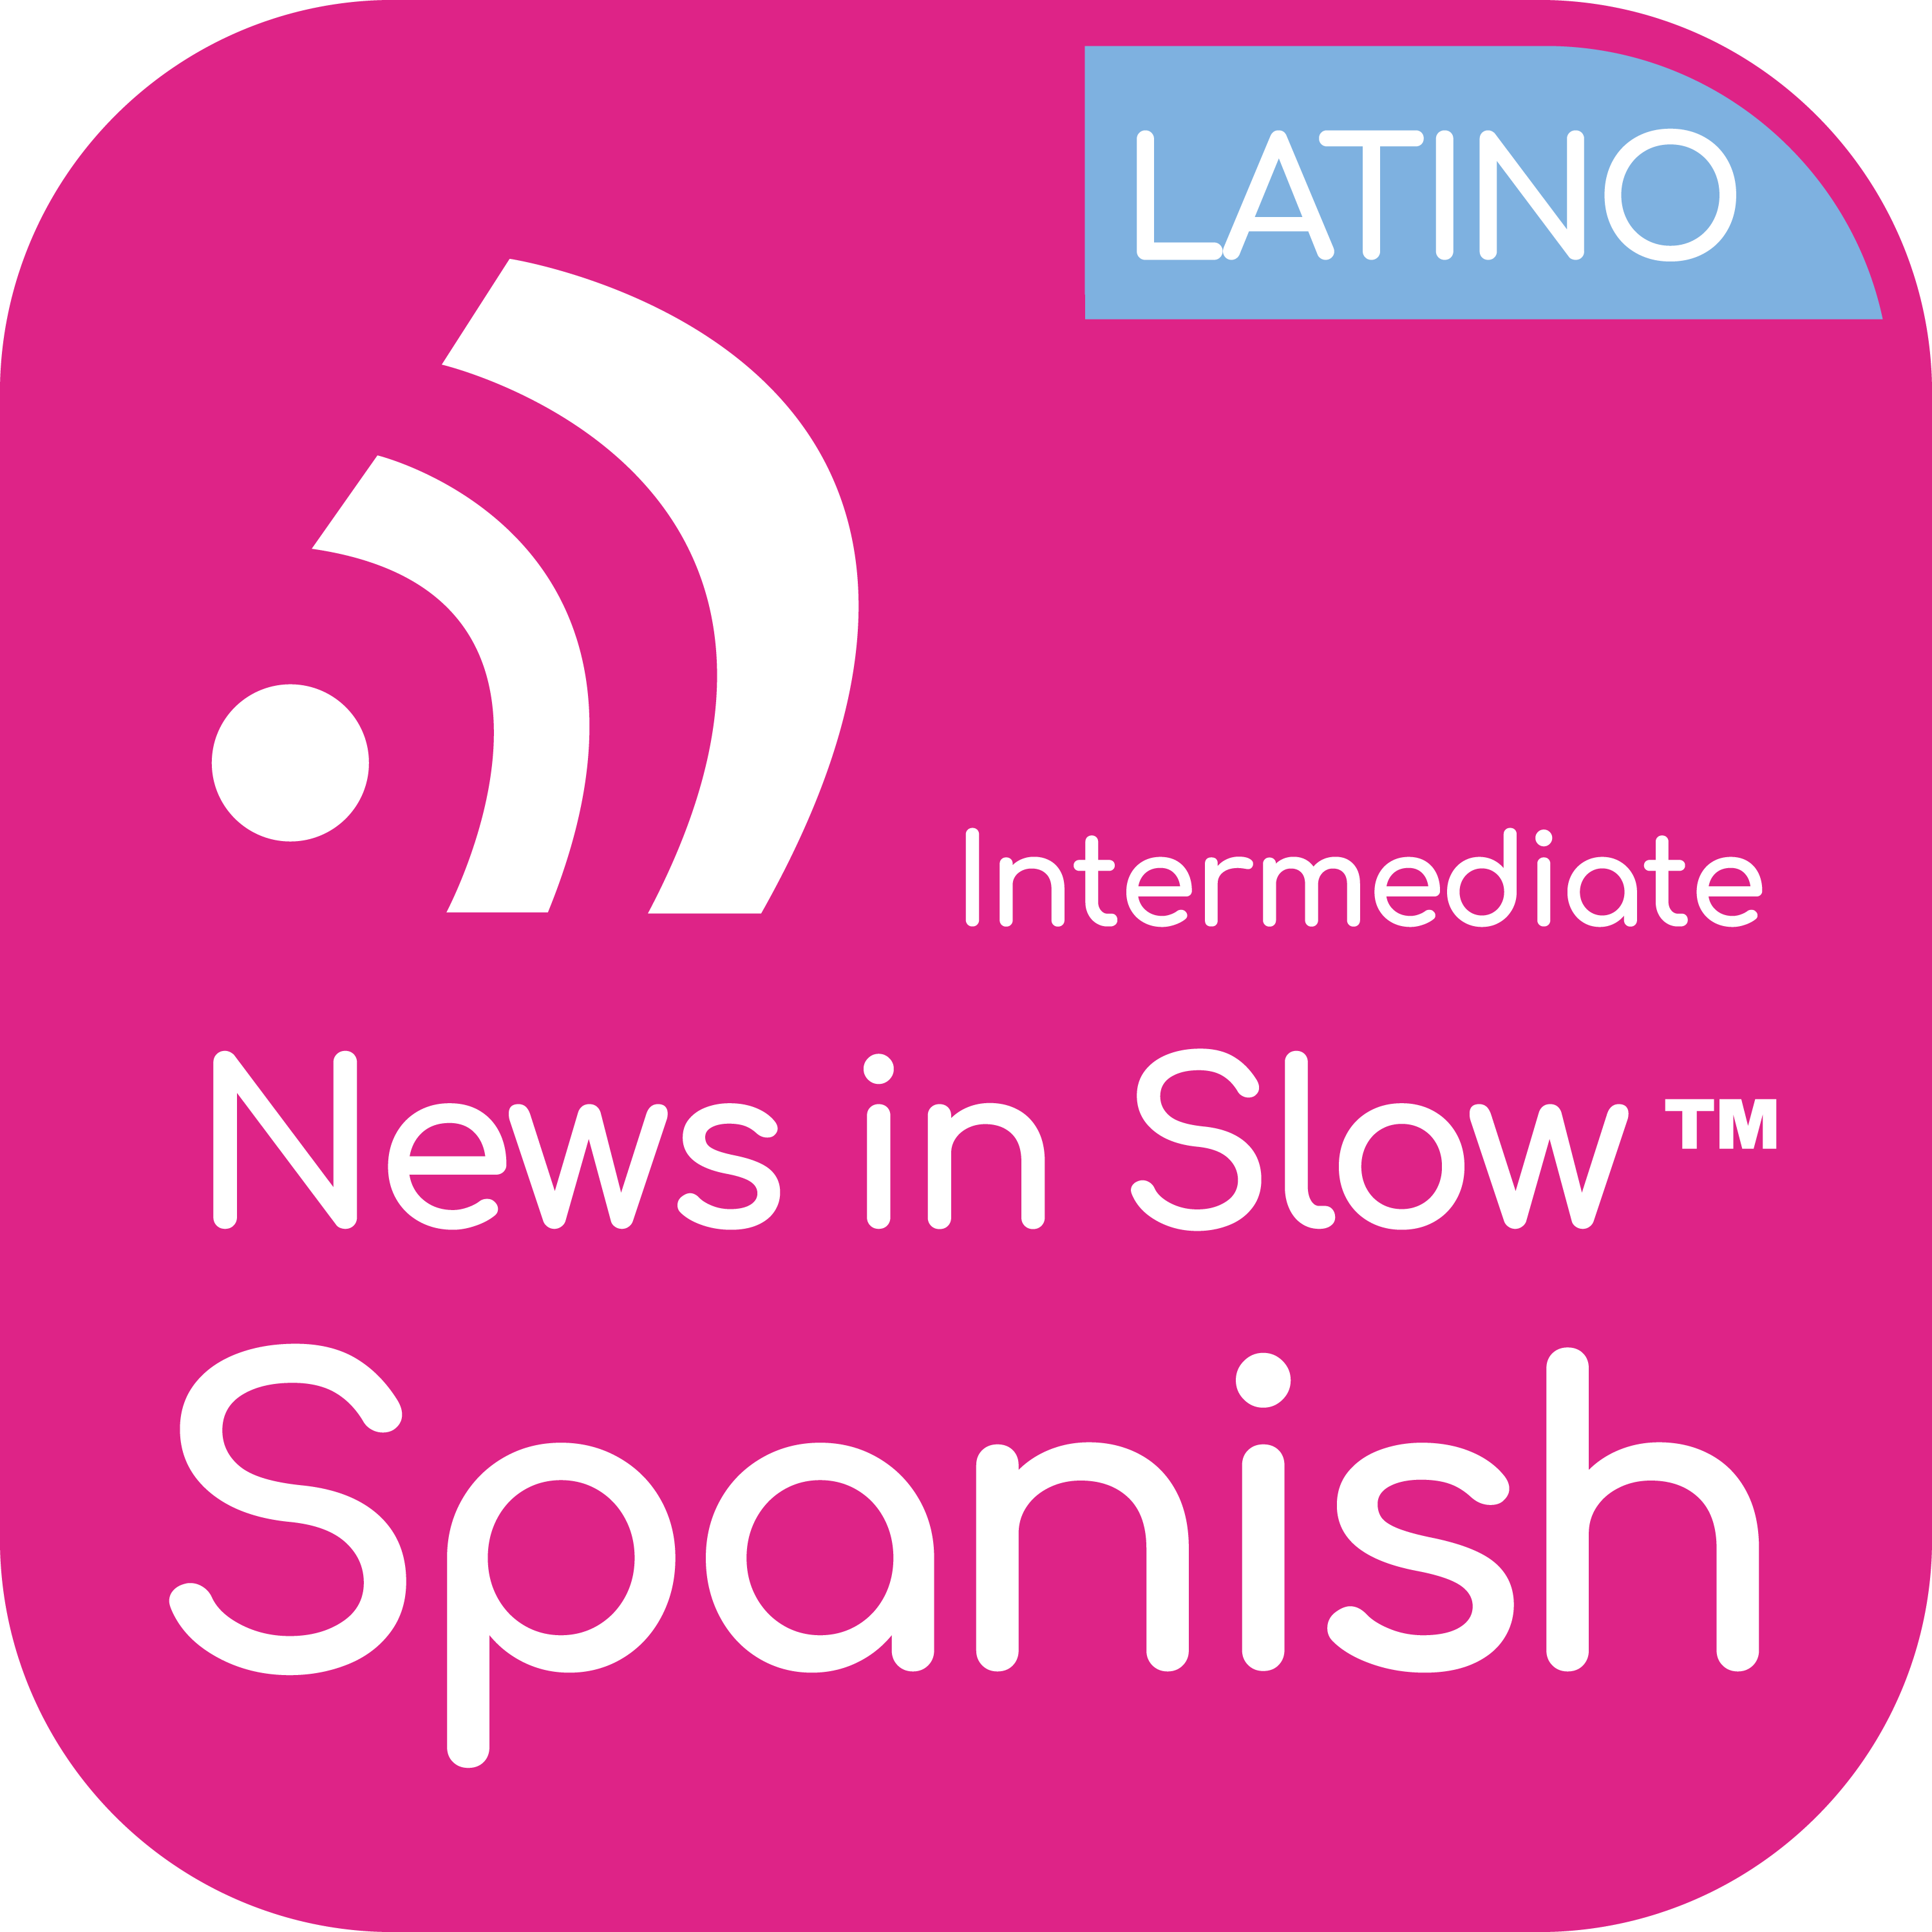 News In Slow Spanish Latino #406 - Study Spanish while Listening to the News